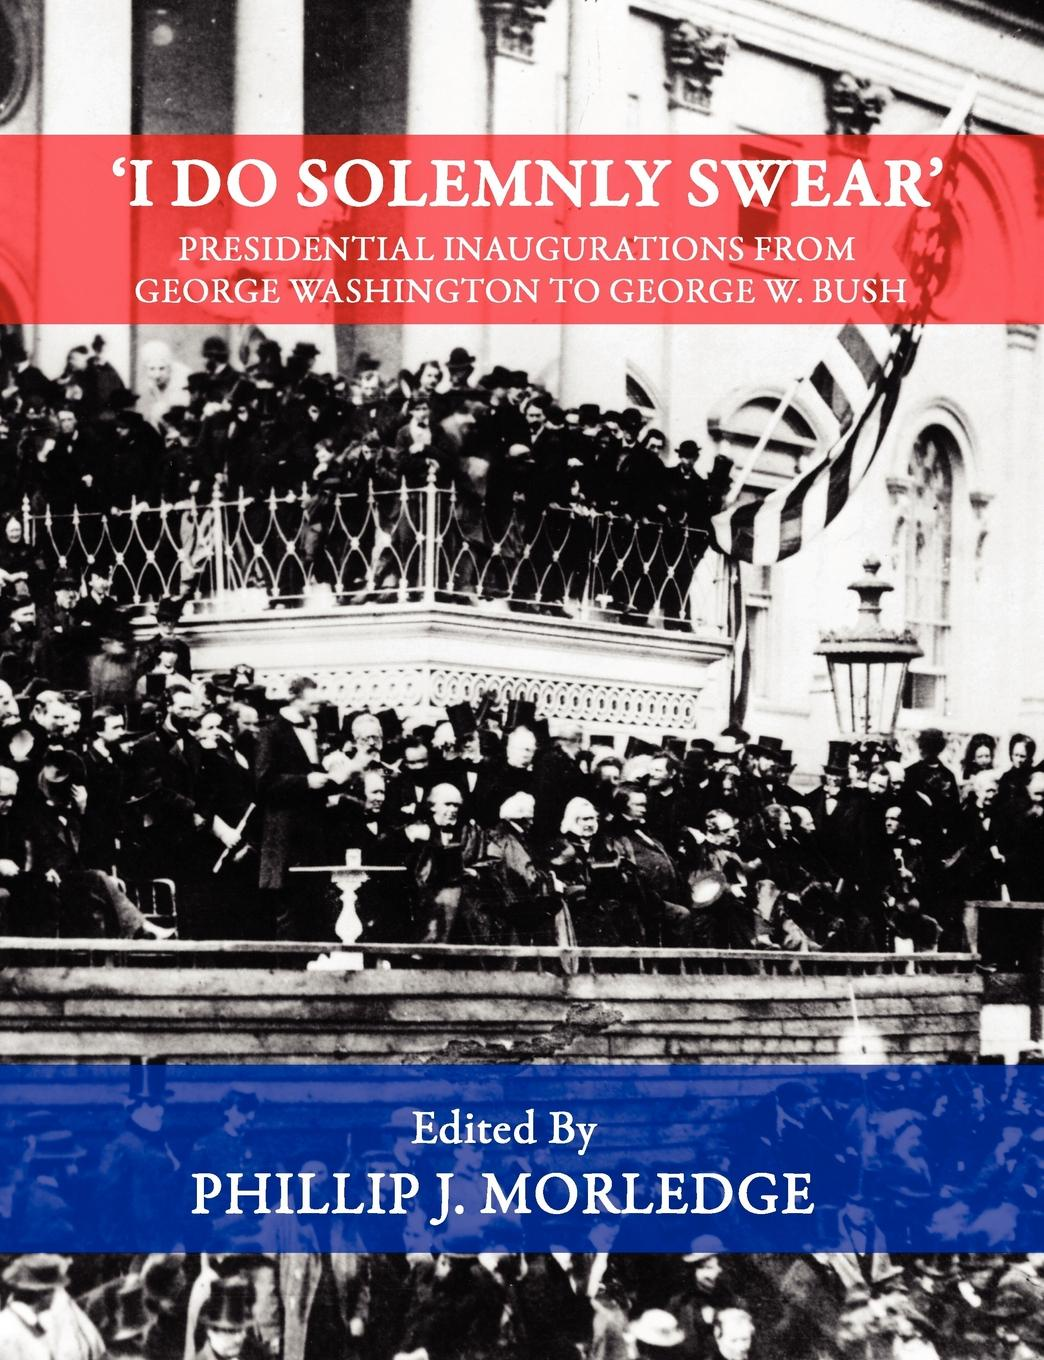 Phillip J. Morledge .I Do Solemnly Swear. - Presidential Inaugurations From George Washington to George W. Bush phillip j morledge the many legends of jesse james